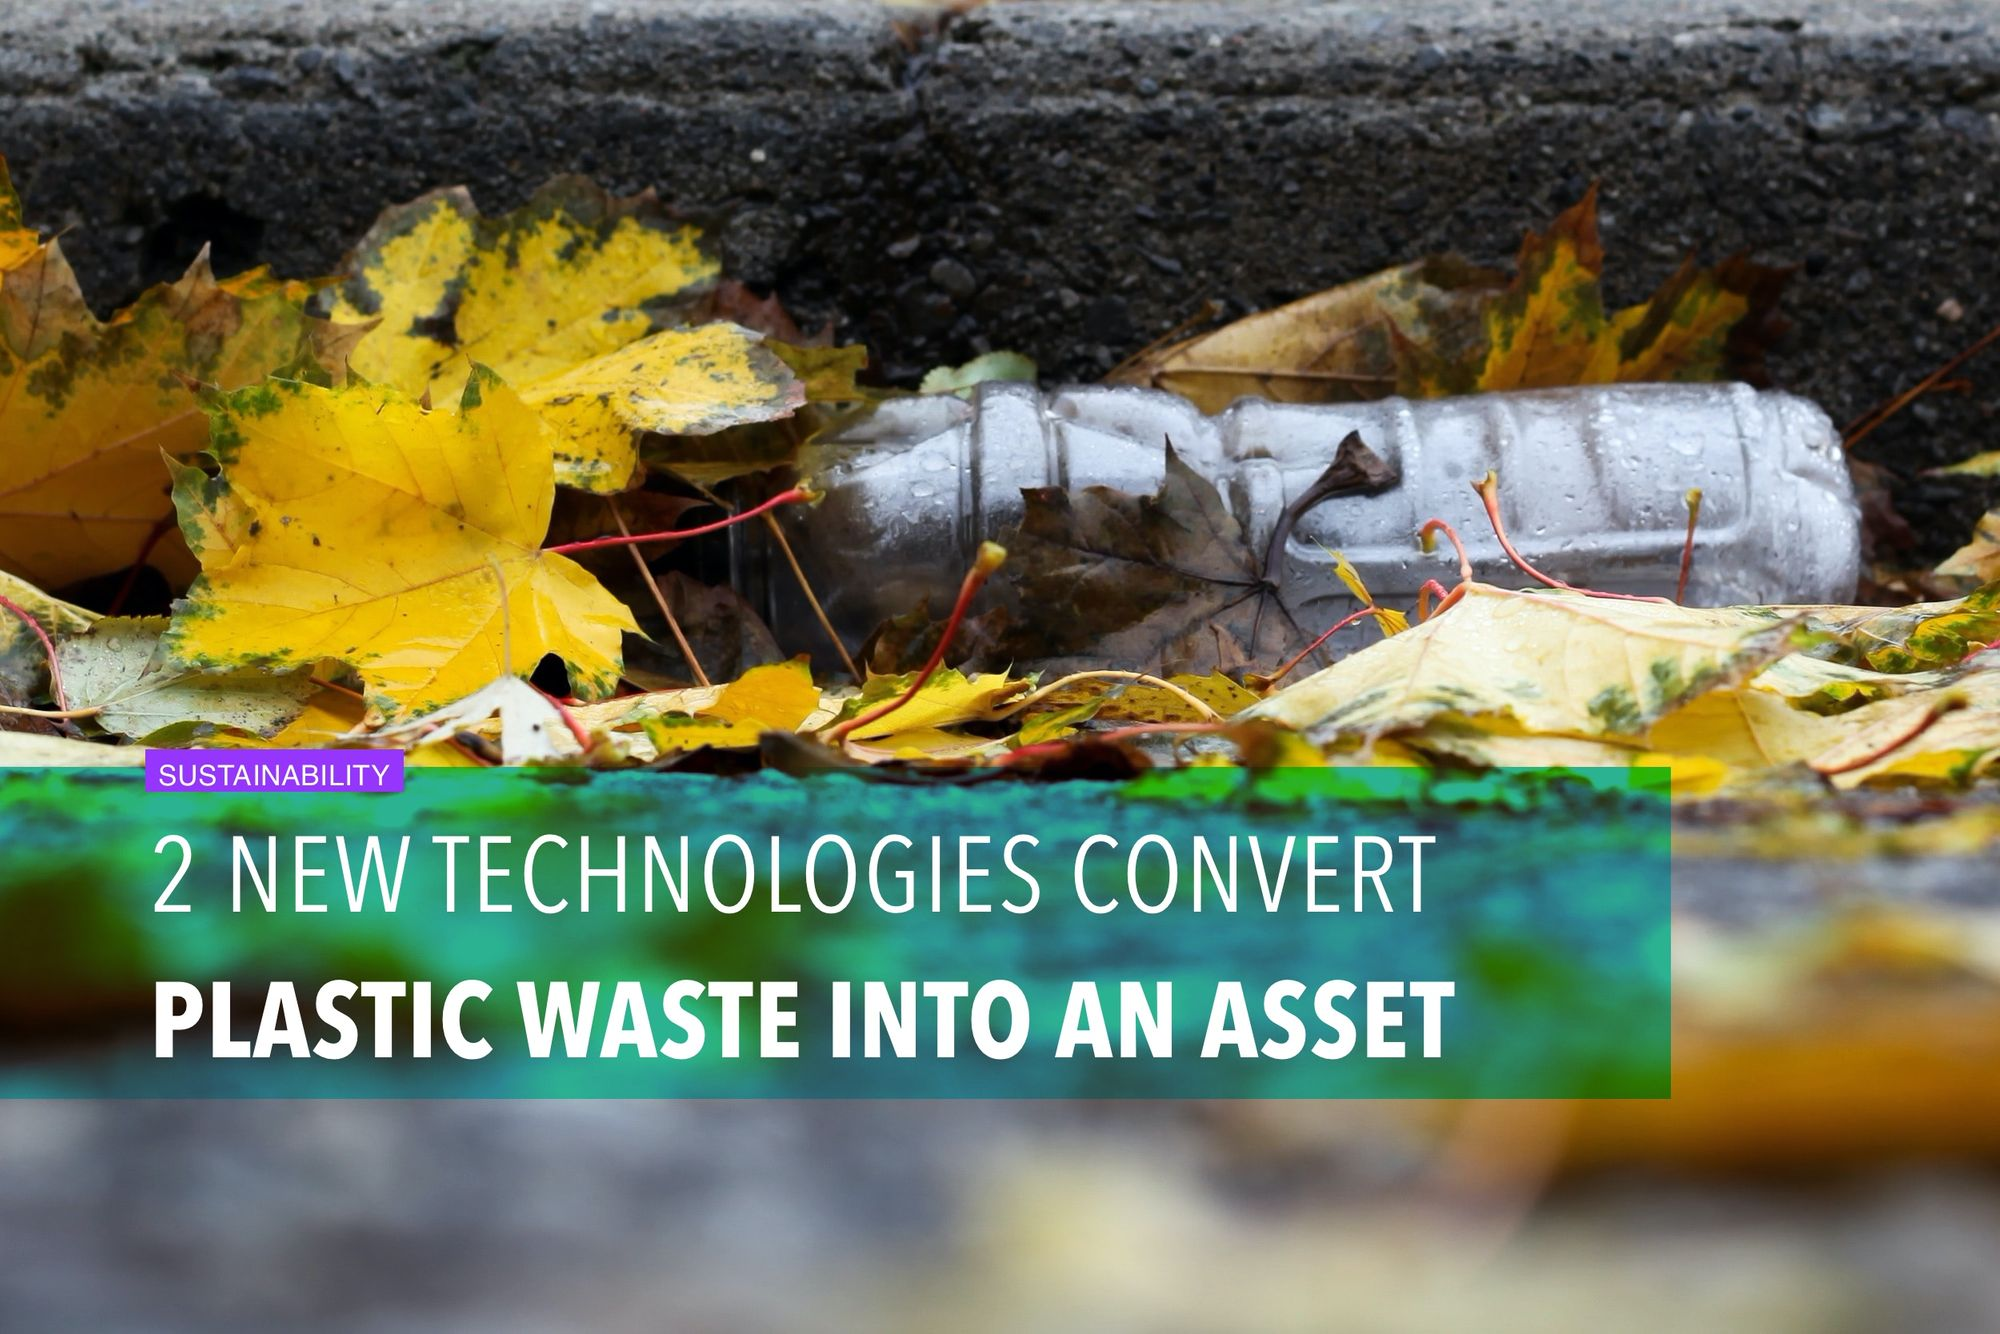 2 new technologies convert plastic waste into an asset